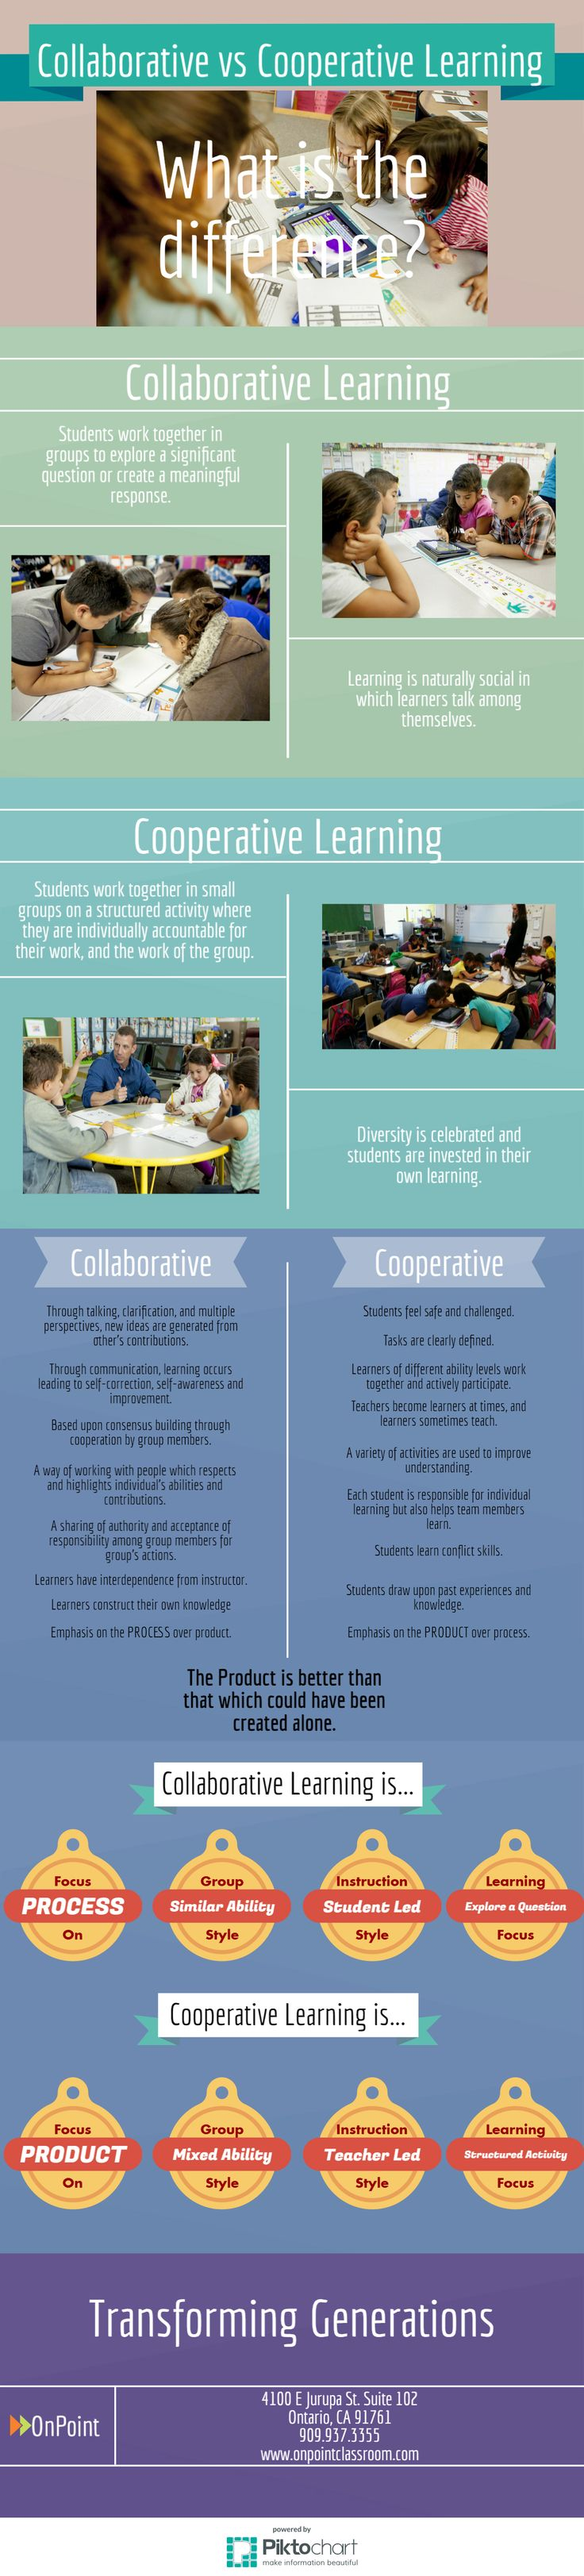 What is the difference between collaborative and cooperative learning?